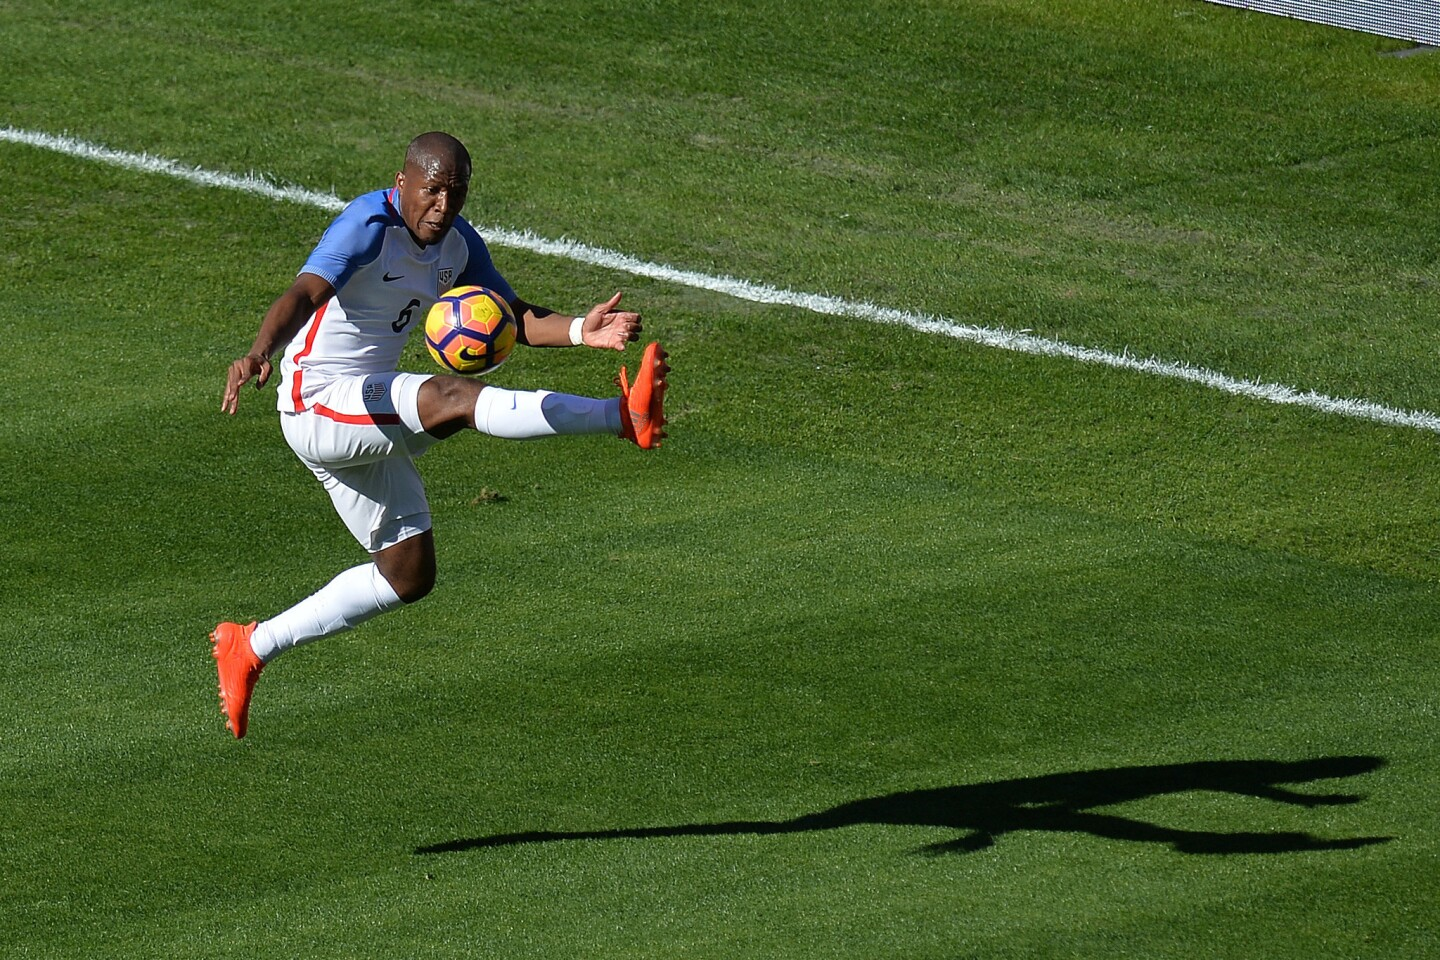 Jan 29, 2017; San Diego, CA, USA; United States midfielder Darlington Nagbe (6) settles the ball against the Serbia during the first half at Qualcomm Stadium. Mandatory Credit: Jake Roth-USA TODAY Sports ** Usable by SD ONLY **